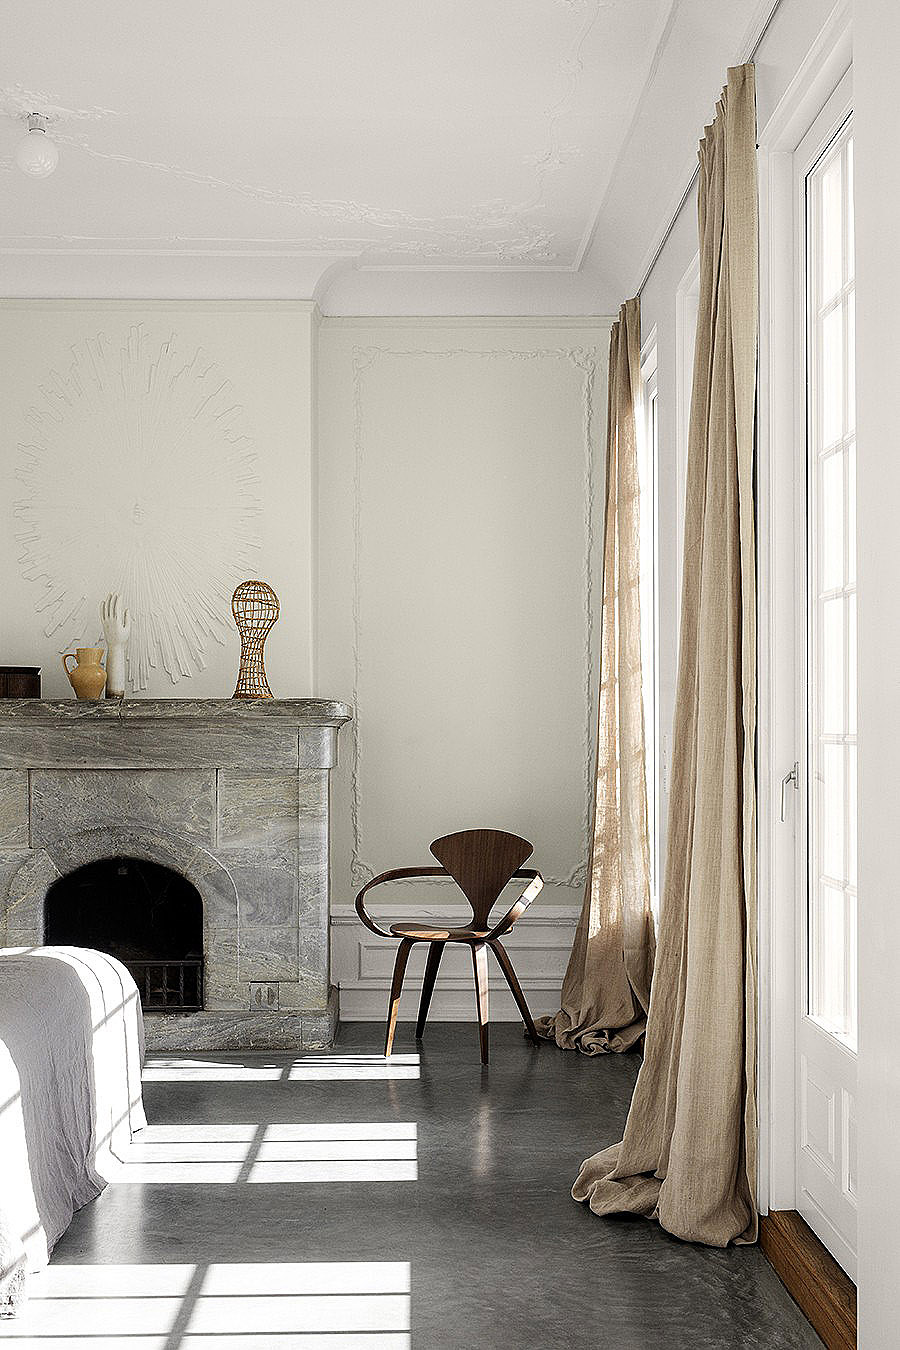 decor-aid-interior-design-ideas-drapes.jpg